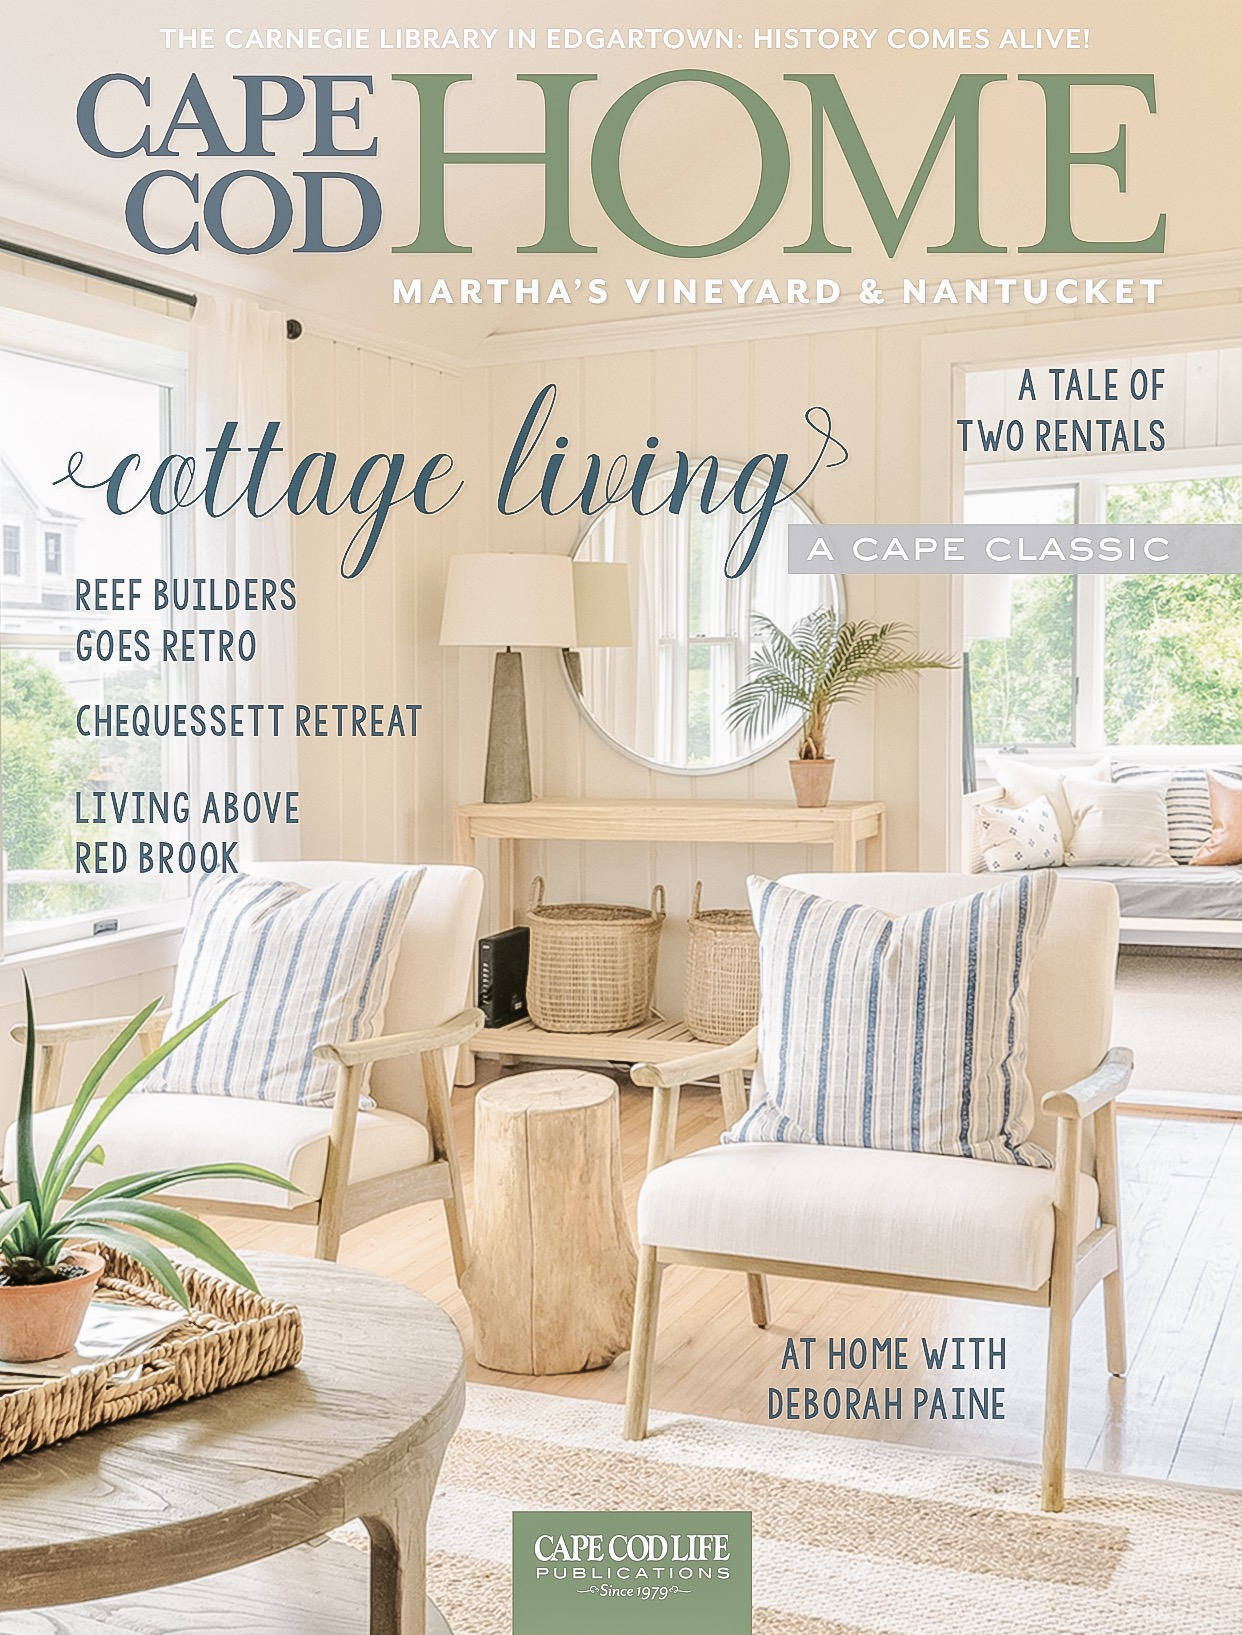 cover story - Read the full cover story on our Hunt Street Revival Project featured in the May 2019 publication of Cape Cod Home magazine.